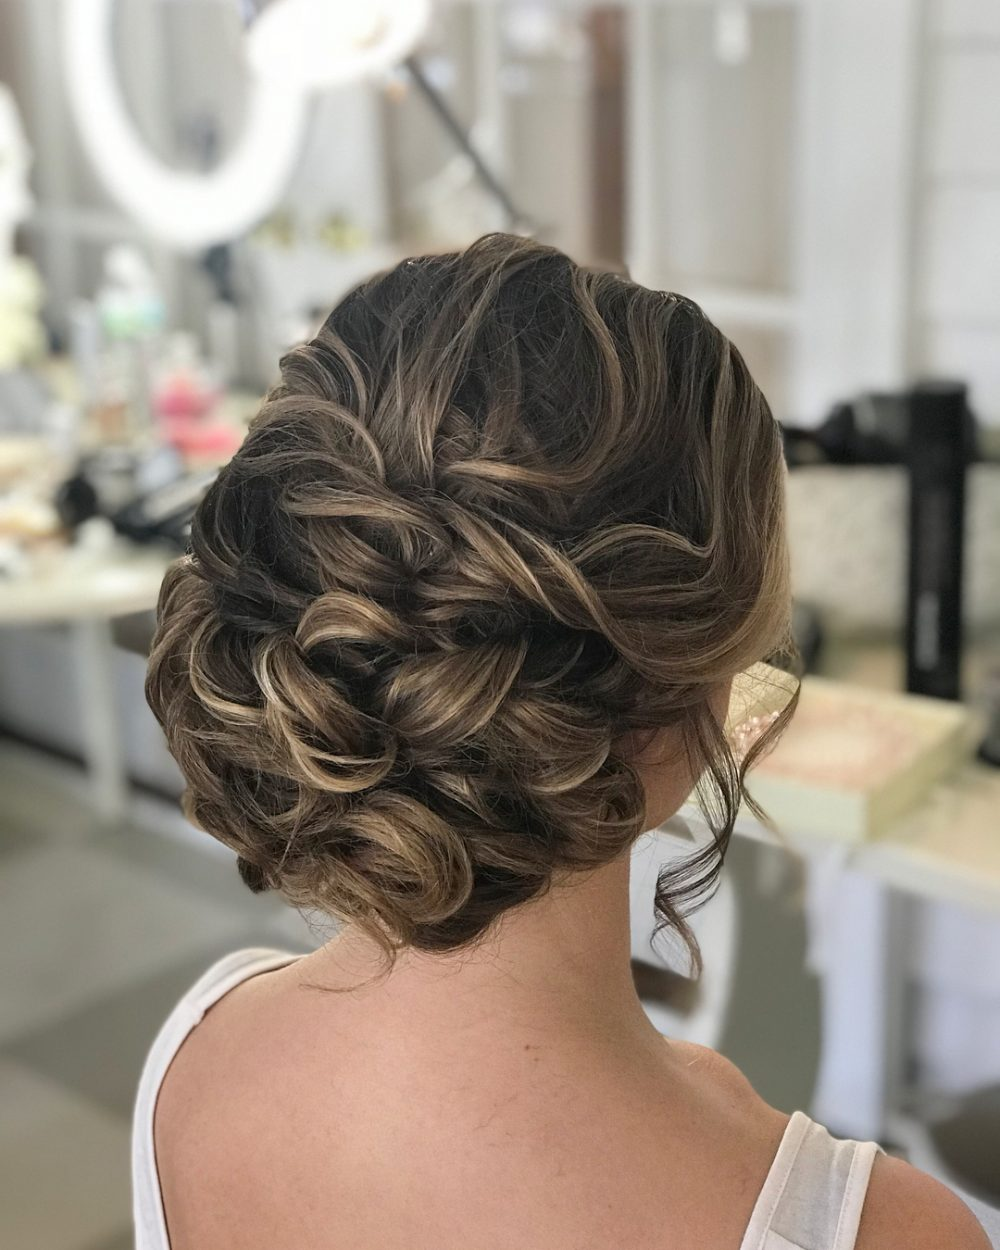 Textured Middle Height Bun hairstyle